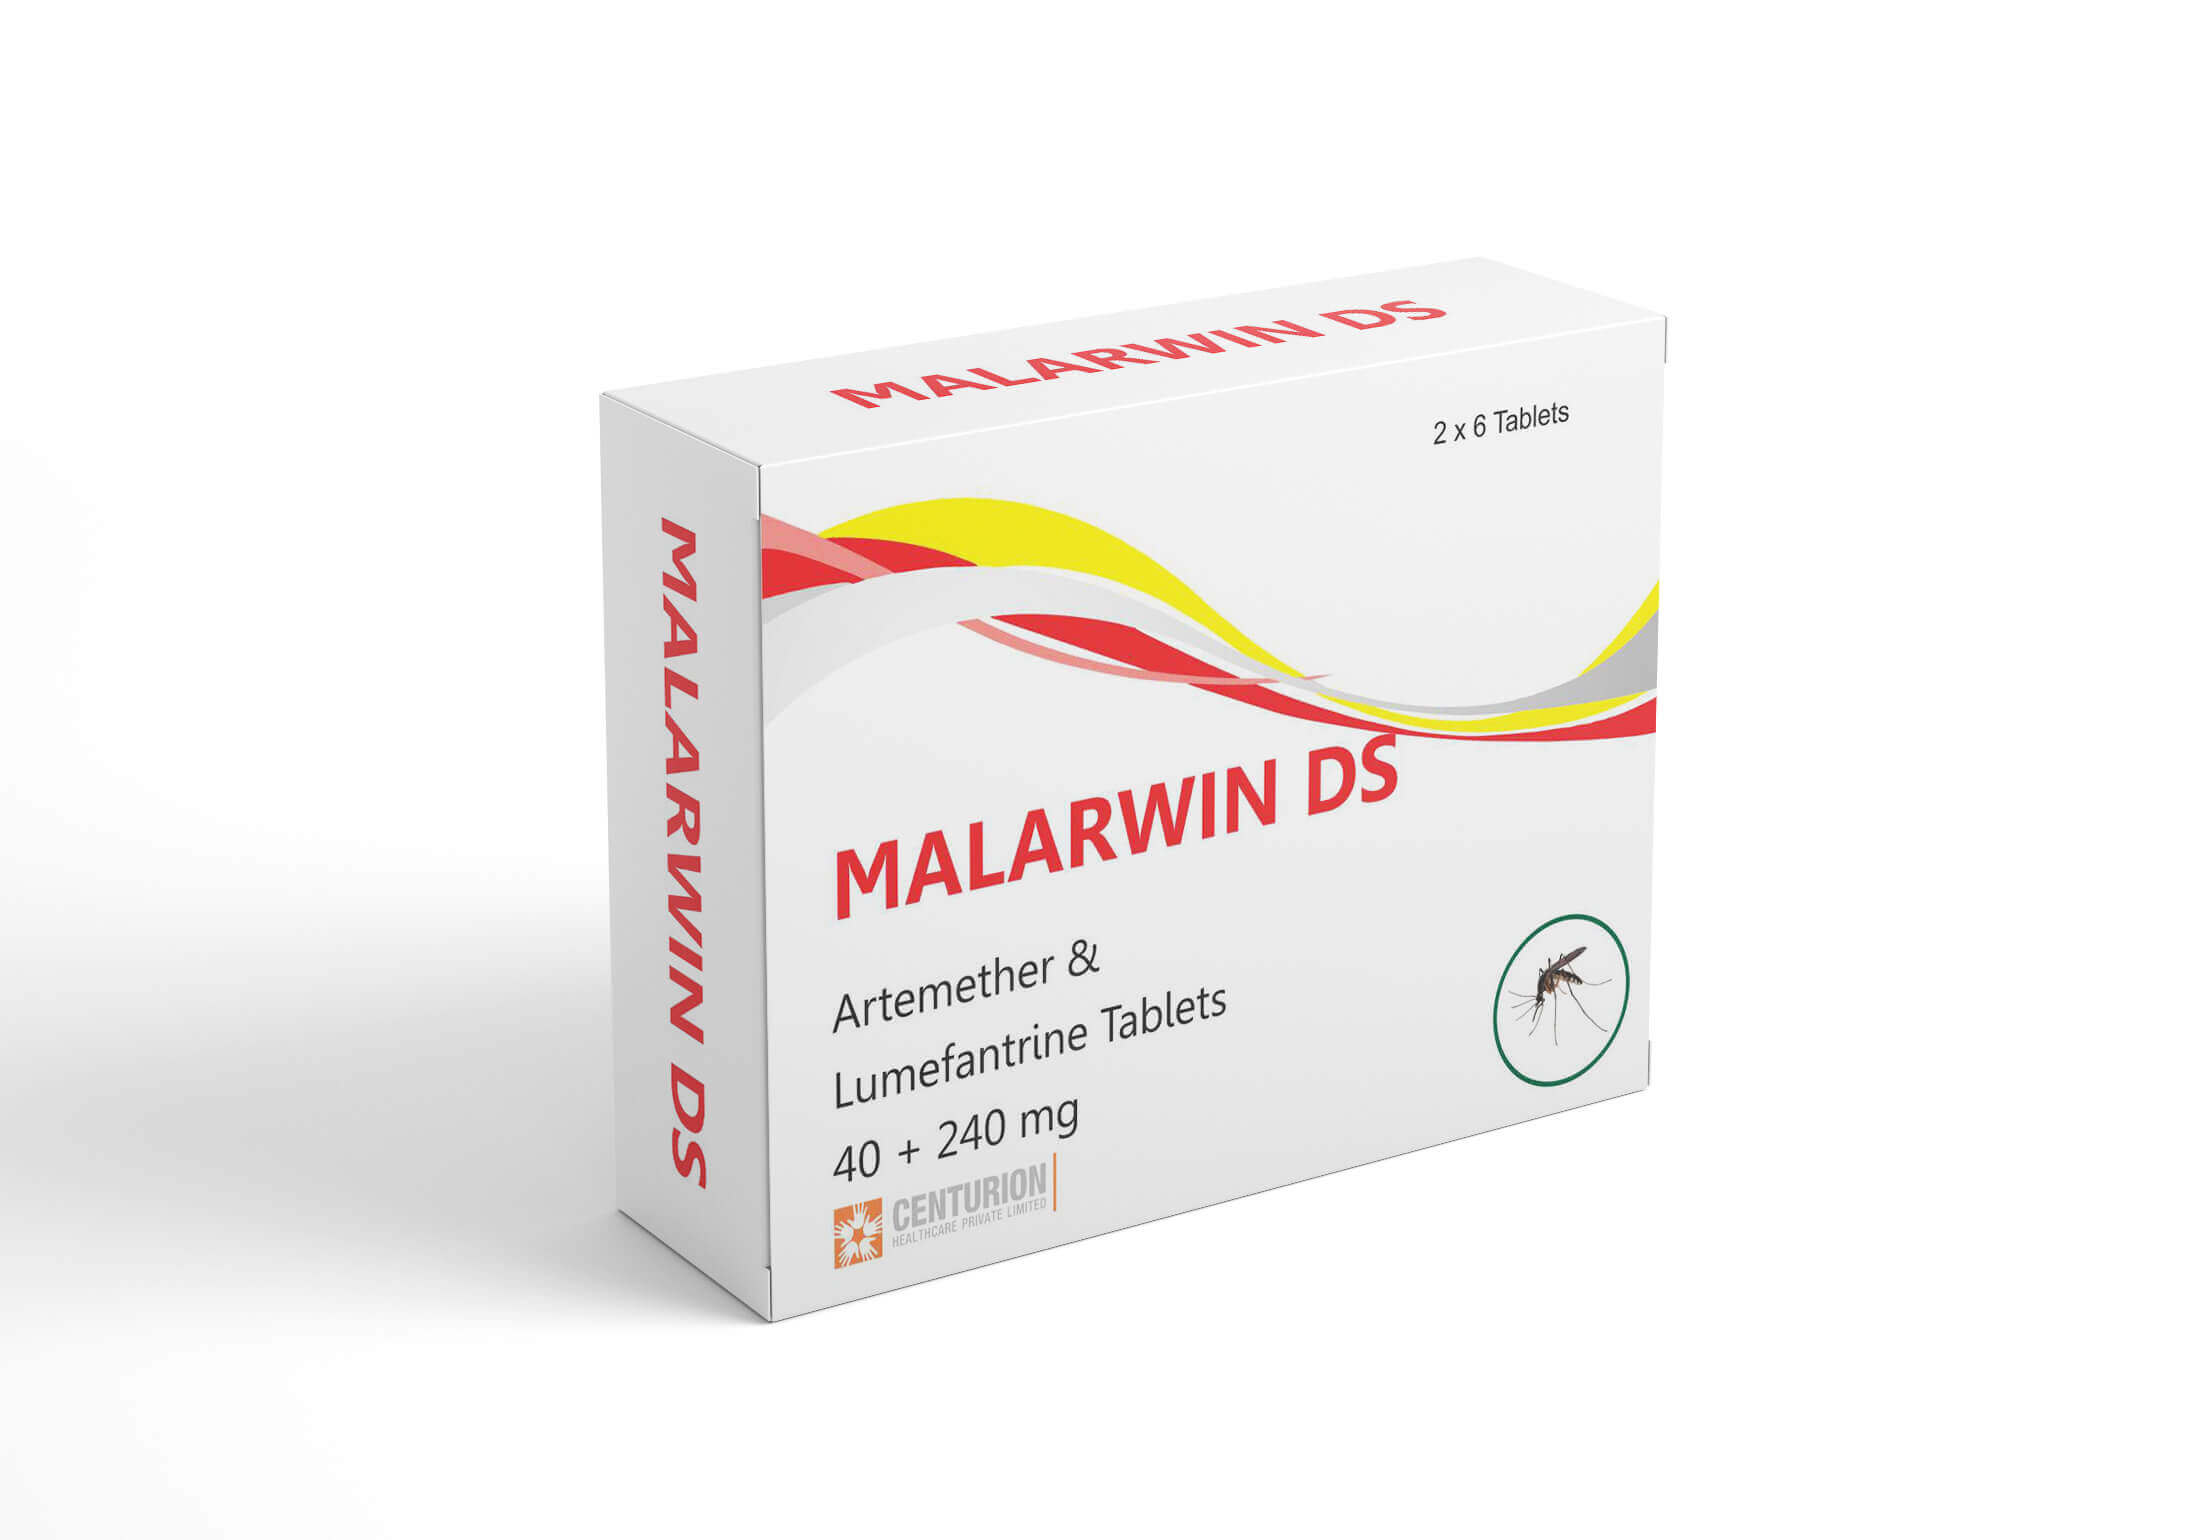 Malarwin DS Tablets